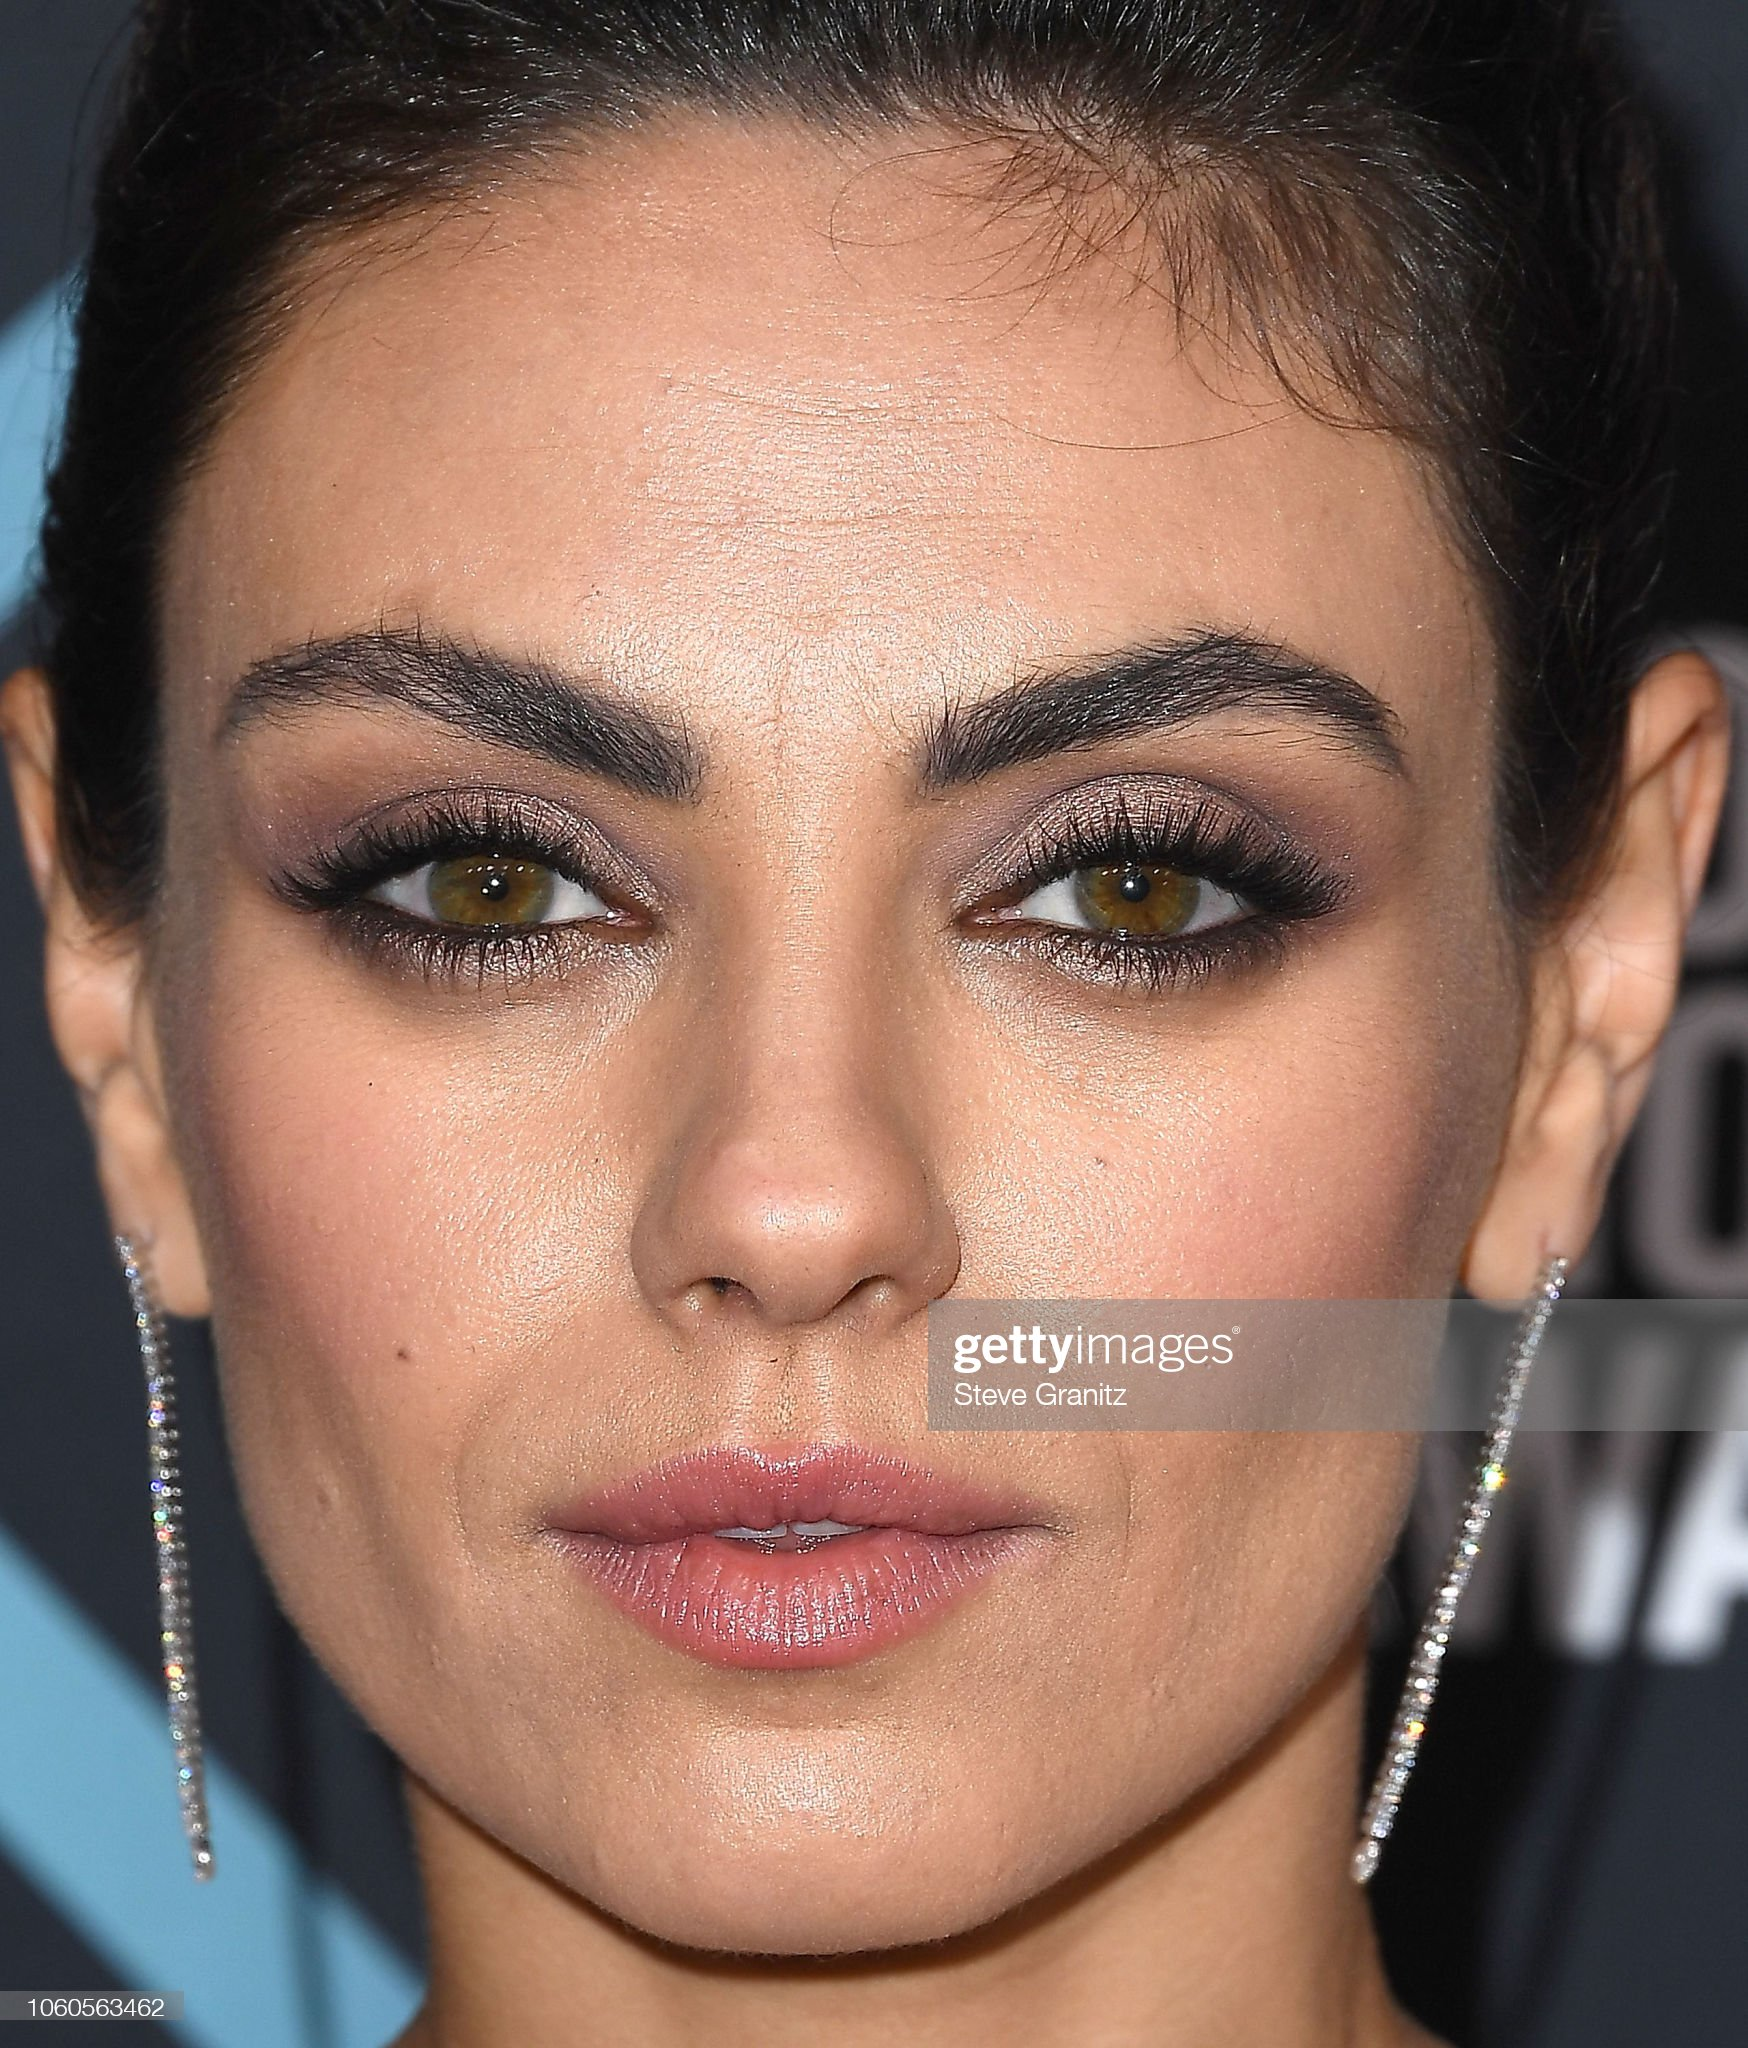 Hazel eyes - Personas famosas con los ojos de color AVELLANA Mila-kunis-arrives-at-the-peoples-choice-awards-2018-at-barker-hangar-picture-id1060563462?s=2048x2048